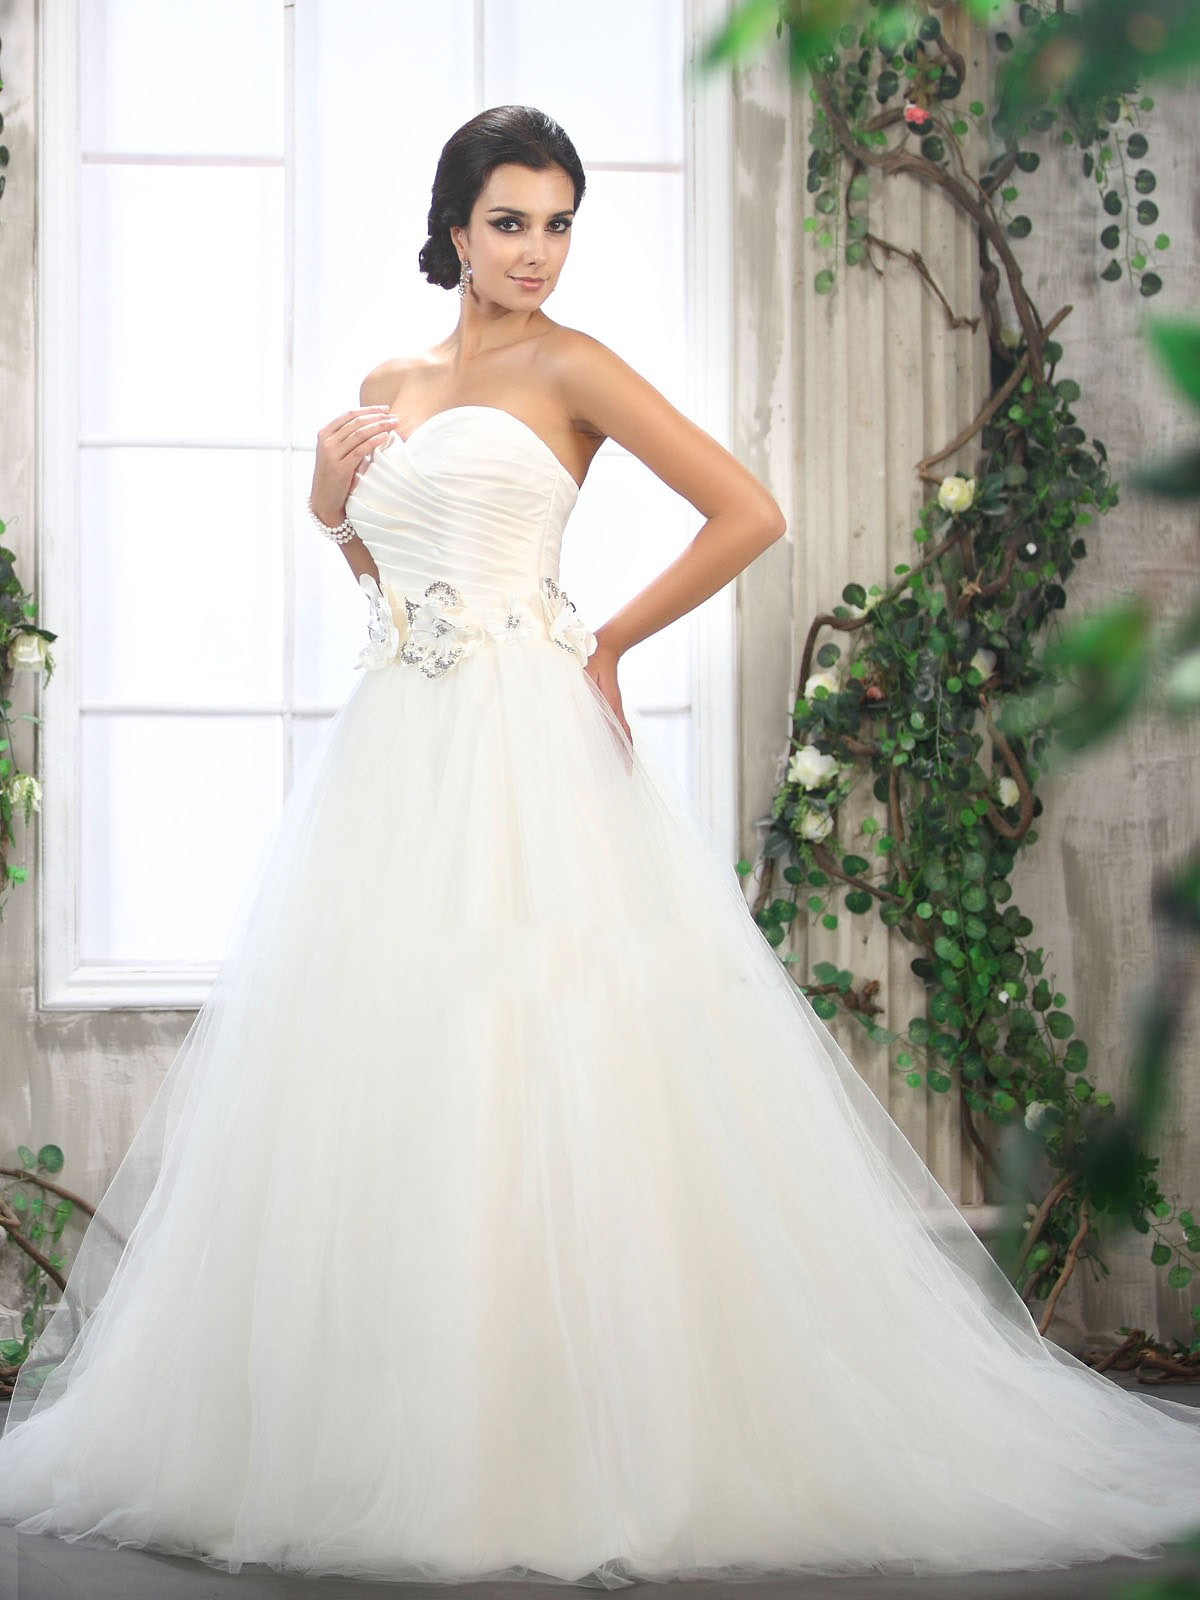 Flattering and Charming Bride Dresses for Special Day